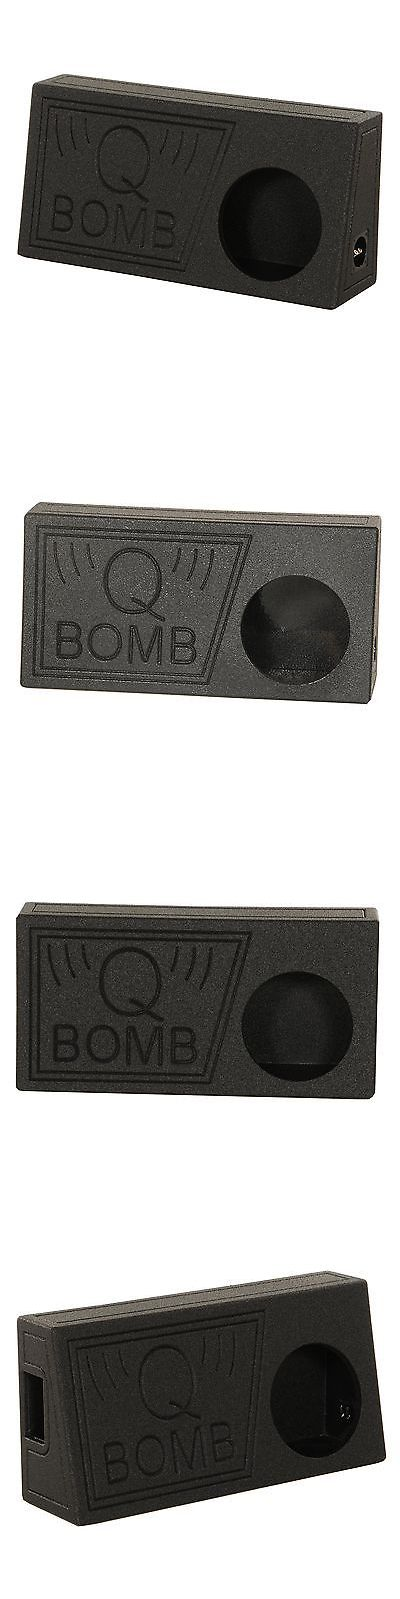 Speaker Sub Enclosures: Q Power Qbomb Single 10 Inch Vented Subwoofer Sub Box With Black Bedliner Spray -> BUY IT NOW ONLY: $59.95 on eBay!